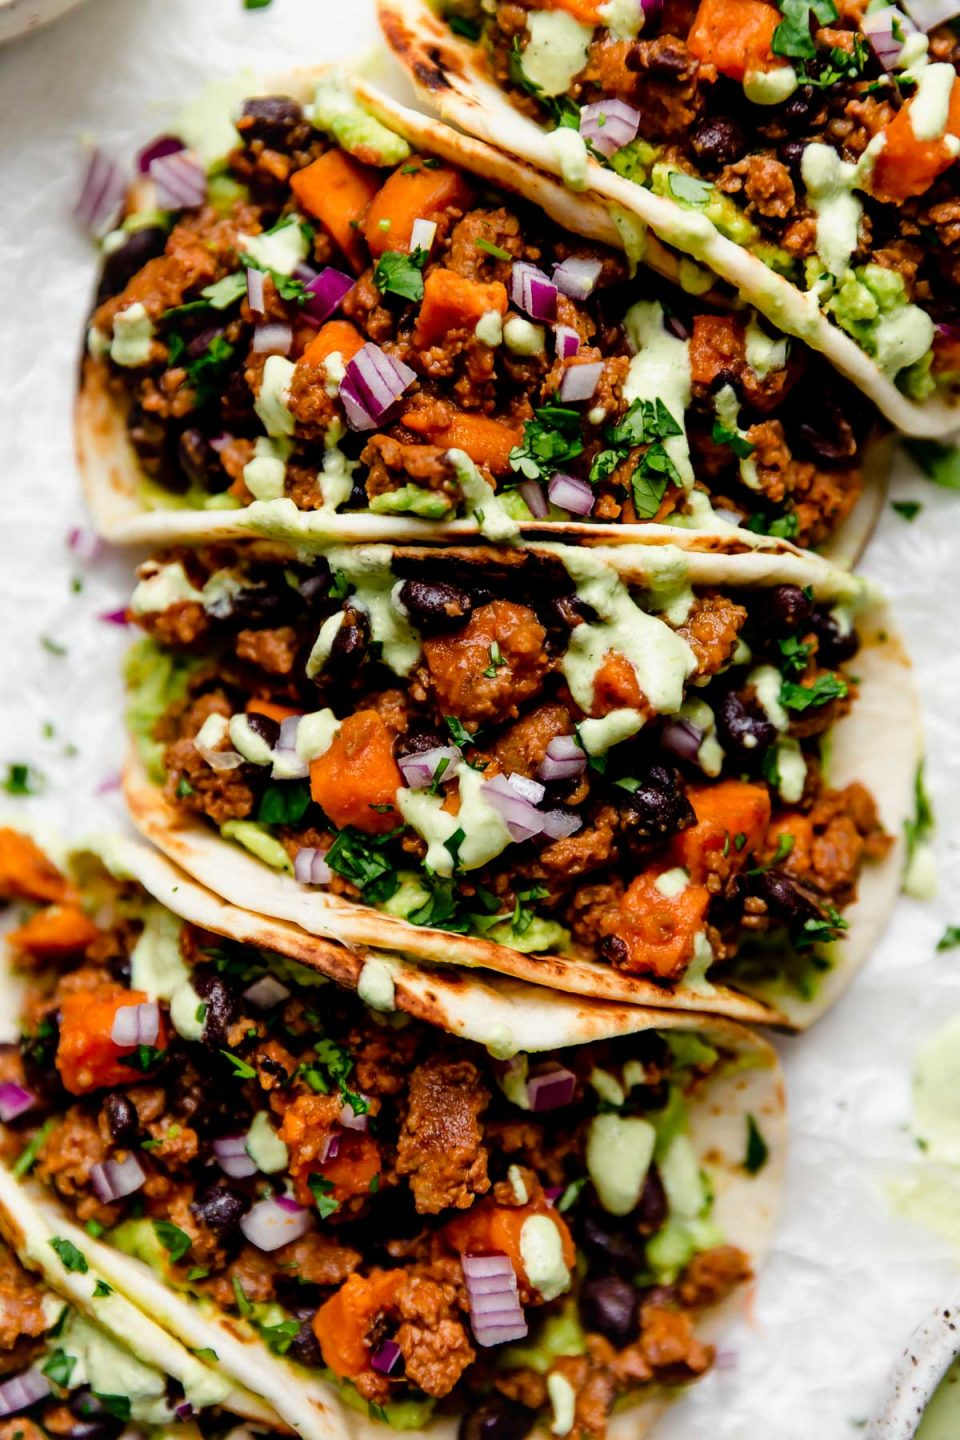 Close up photo of chorizo Sweet Potato Tacos arranged on a white surface. The tacos are topped with a drizzle of homemade cilantro lime crema.